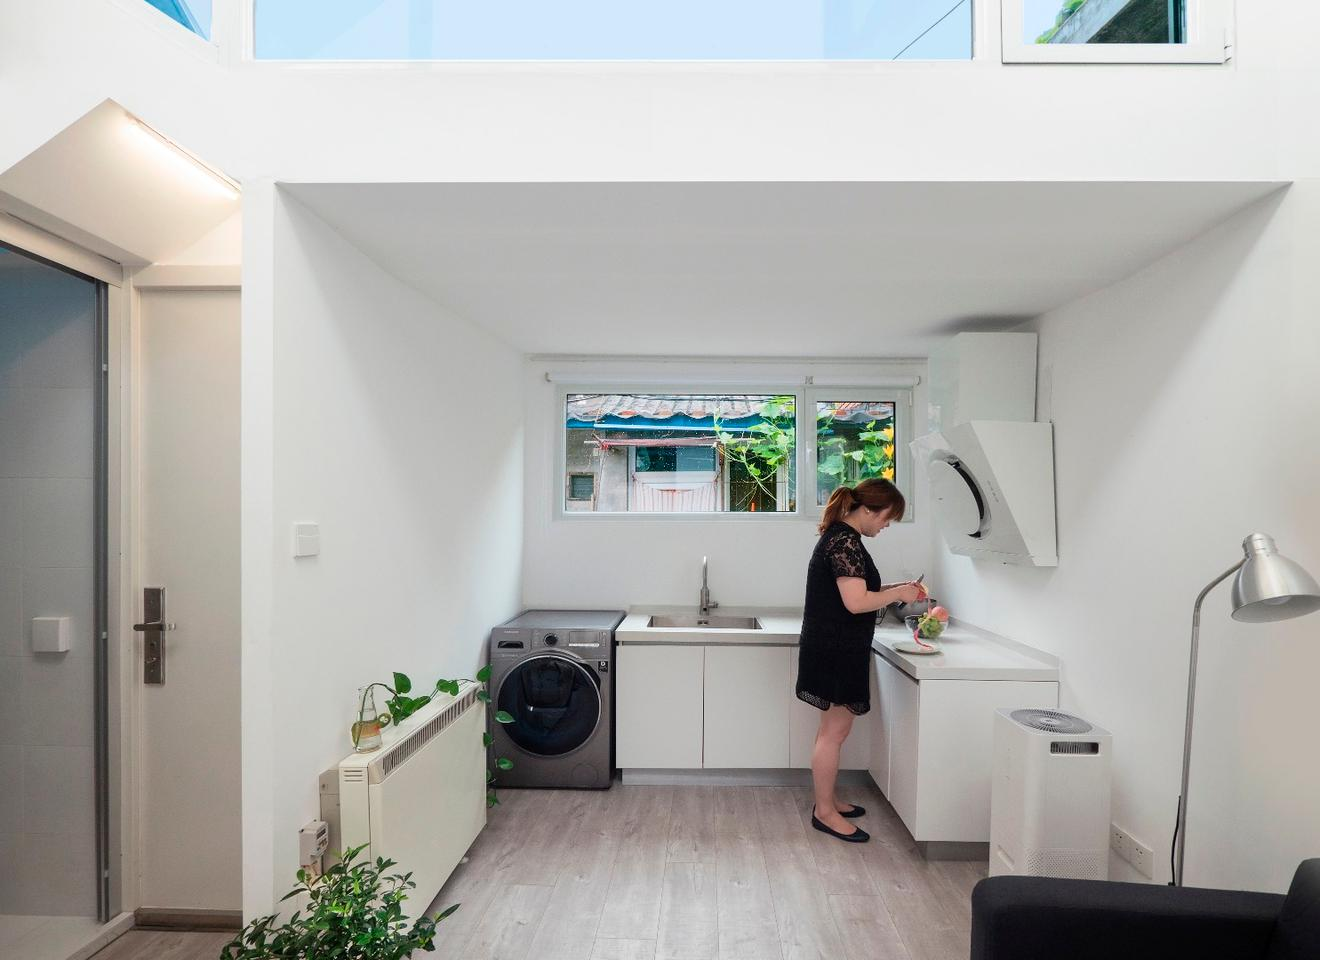 We often associate PAO with off-the-wall concepts like the ventilation shaft housing and tricycle RV, but it also has a more practical side, as shown by Mrs. Fan's Plugin House